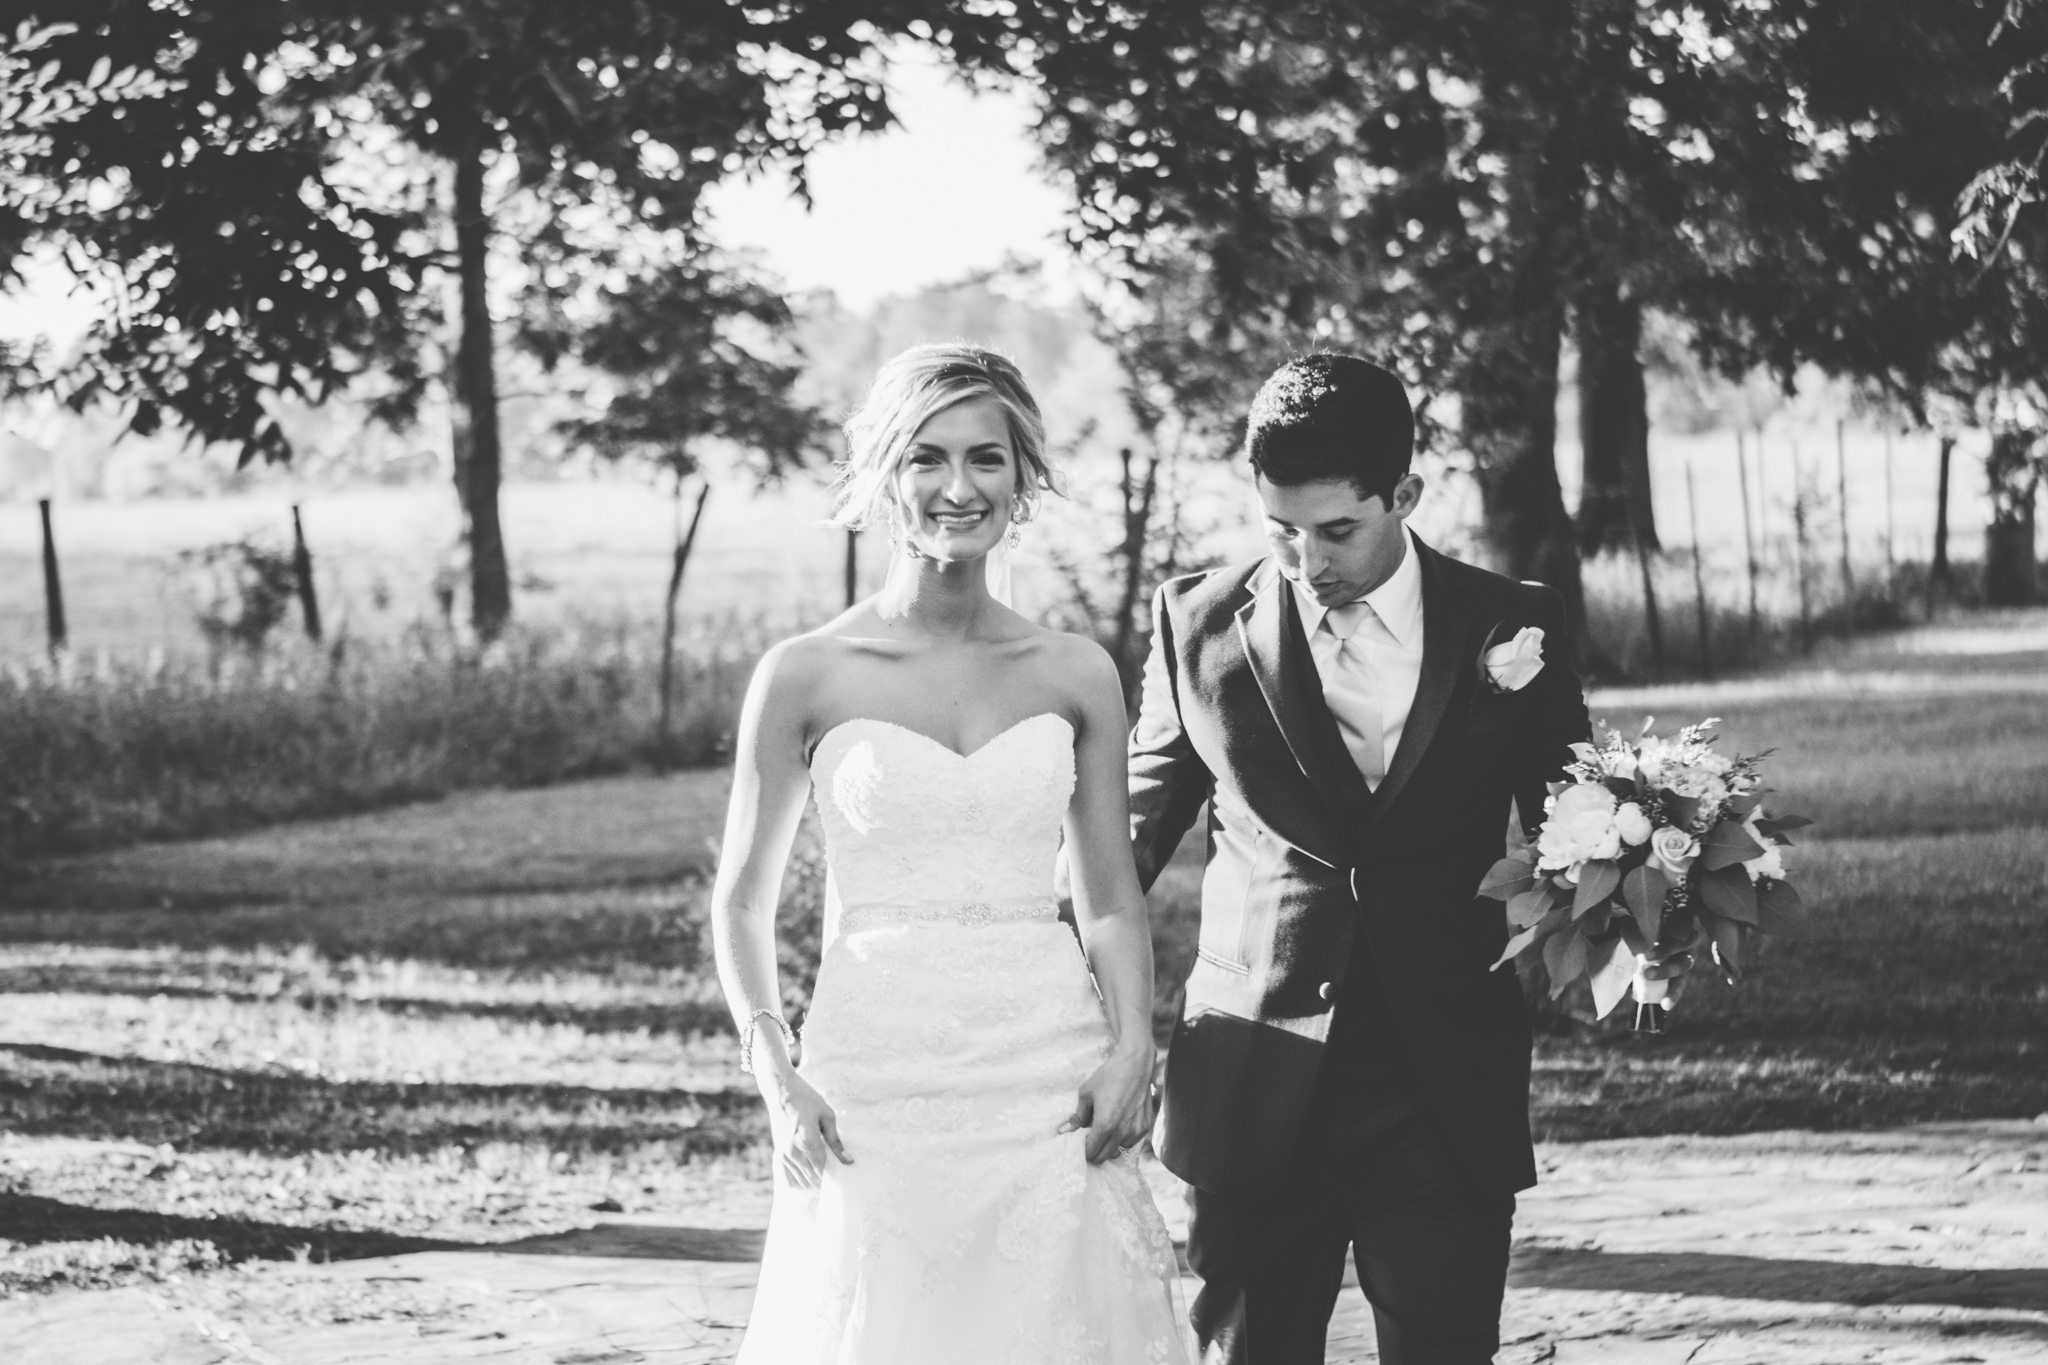 Candid bride and groom shot. Josh + Alora | Classic Denham Springs Wedding. Photos by Christi Childs with The Picture People LA photography Baton Rouge, Louisiana